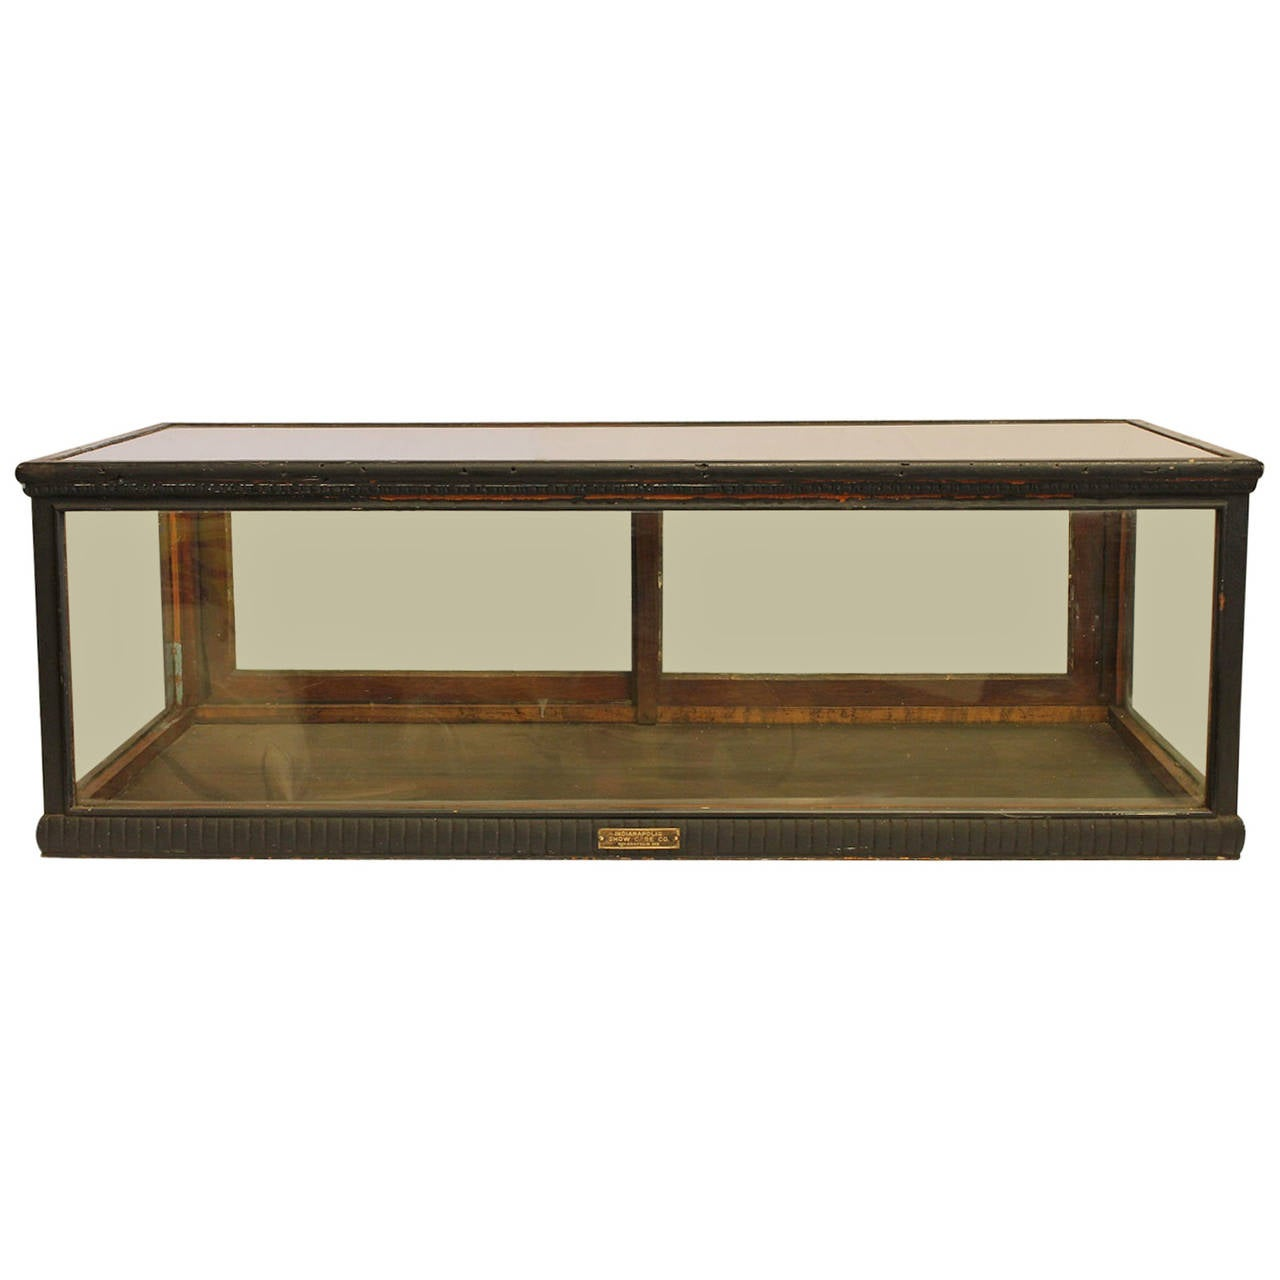 Table top display case - Antique Carved Wood Tabletop Display Showcase 1